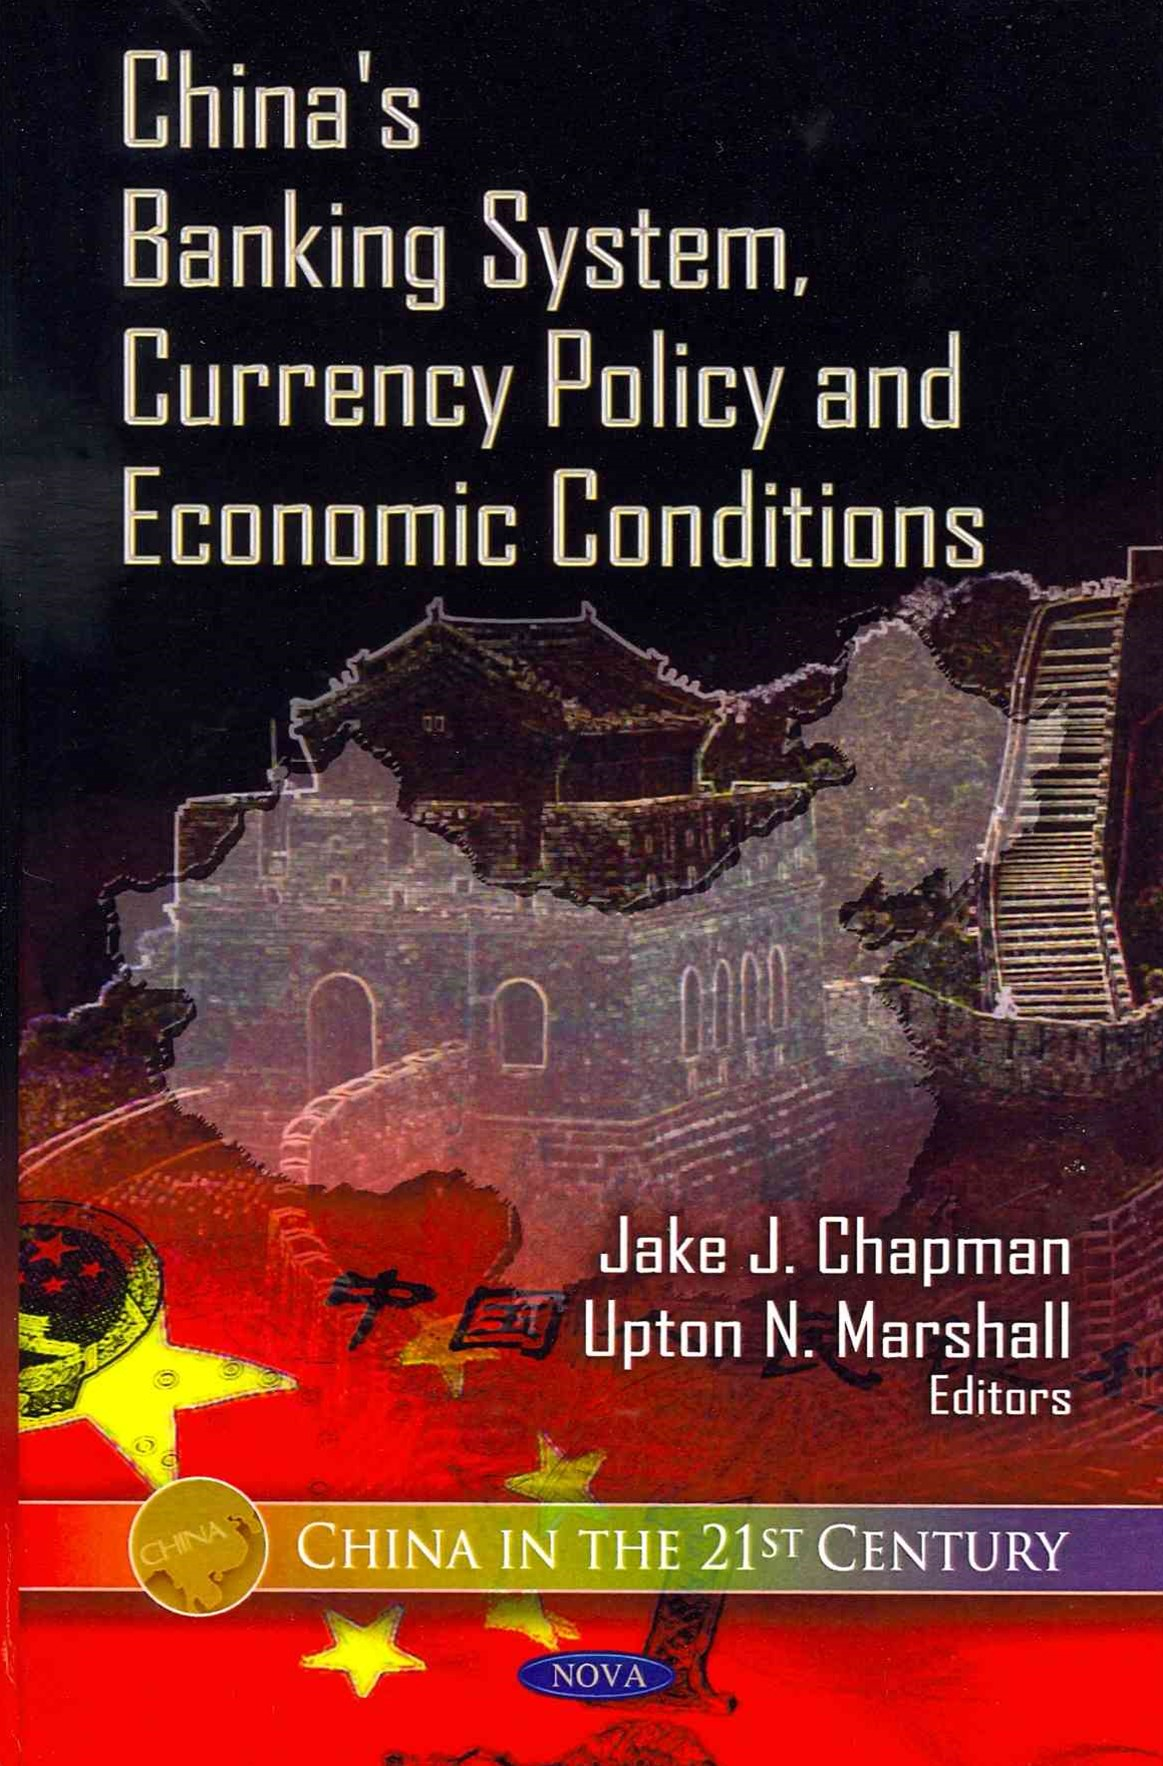 China's Banking System, Currency Policy & Economic Conditions